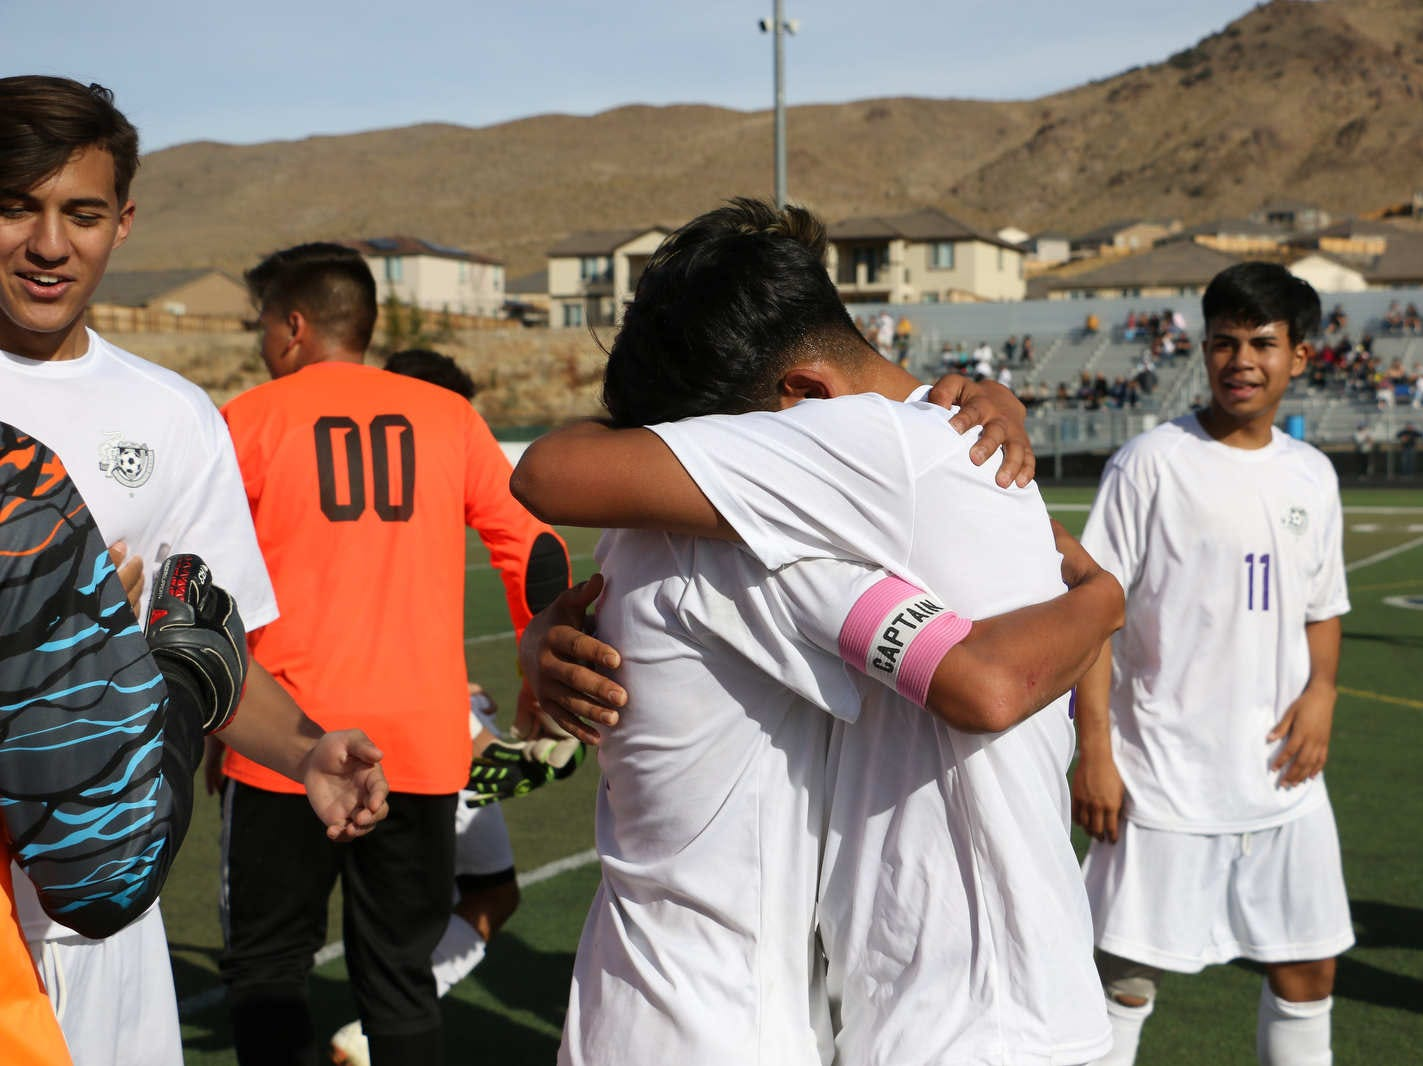 Spanish Springs defeats Galena during their regional final soccer game at Damonte Ranch in Reno on Nov. 3, 2018.